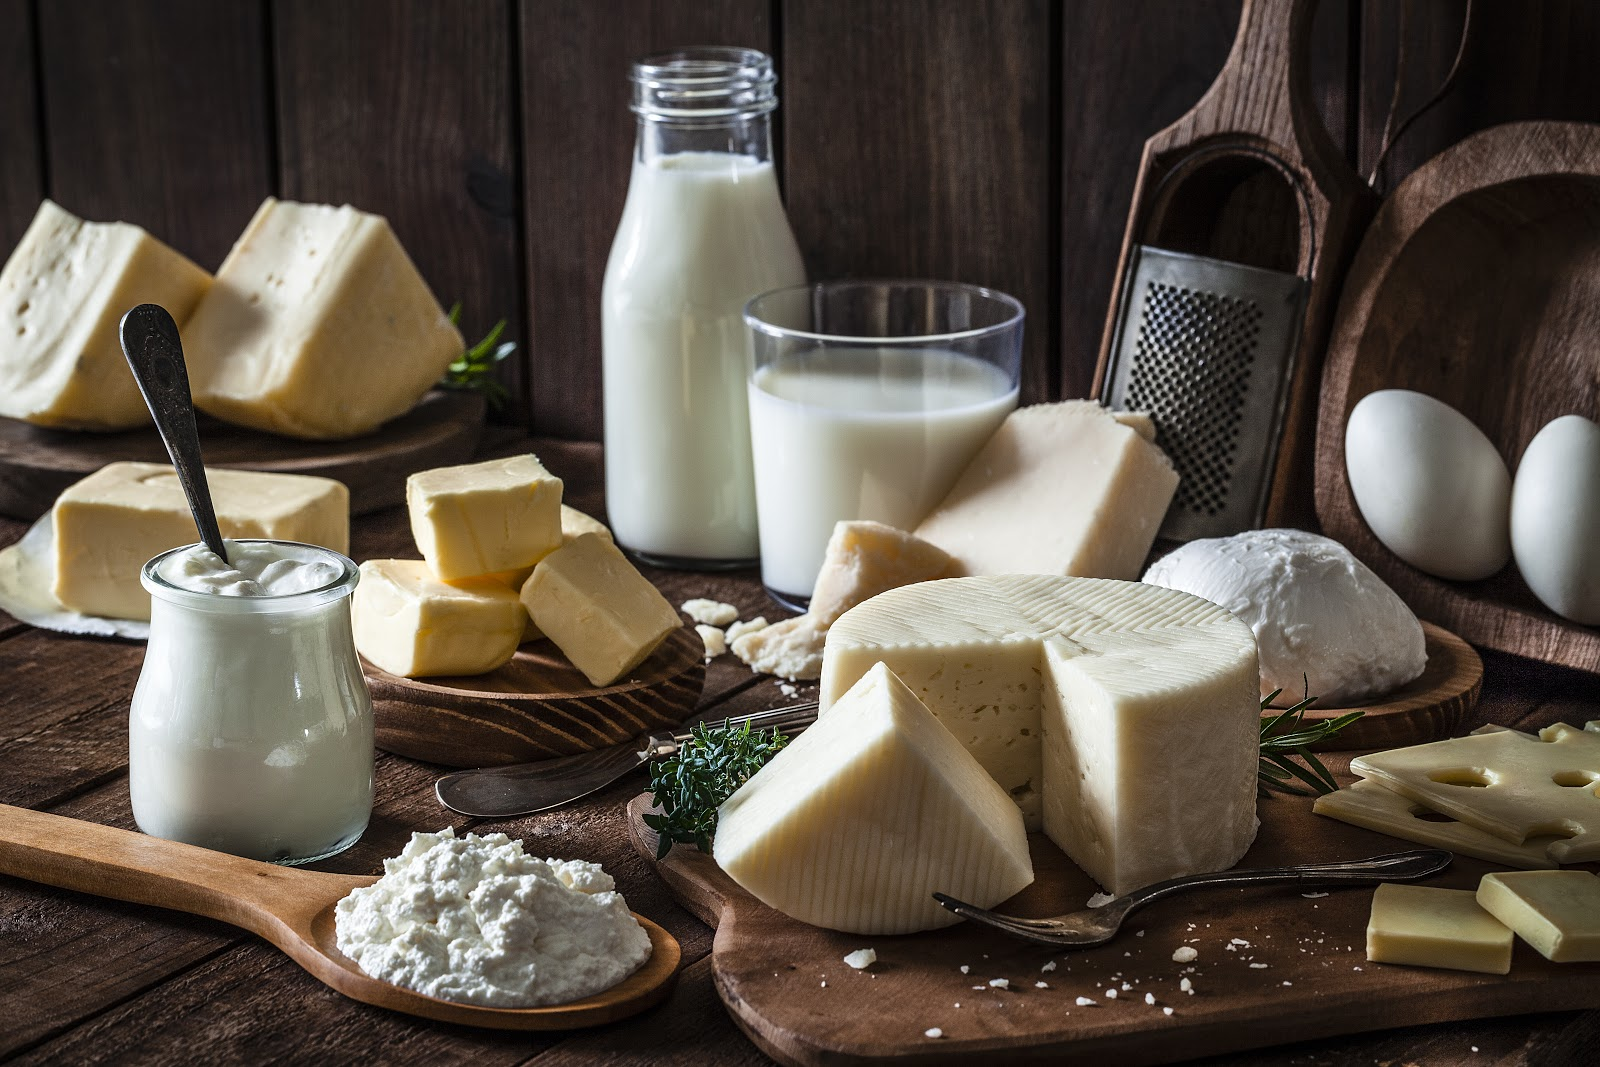 Dairy on display with milk bottle, cut cheeses, cottage cheese, butter and eggs.